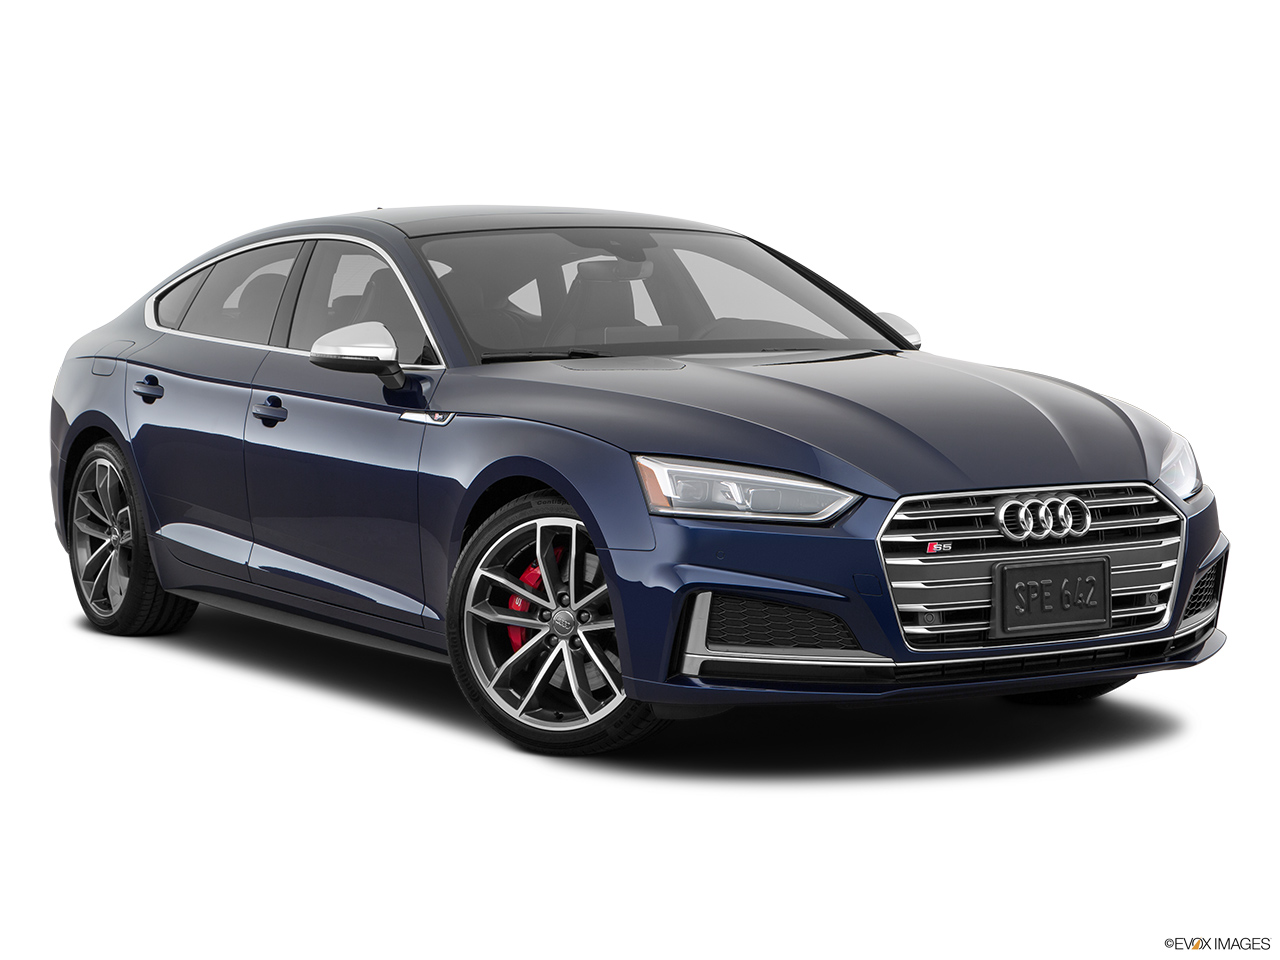 2019 Audi S5 Sportback Premium Plus 3.0 TFSI Front passenger 3/4 w/ wheels turned.